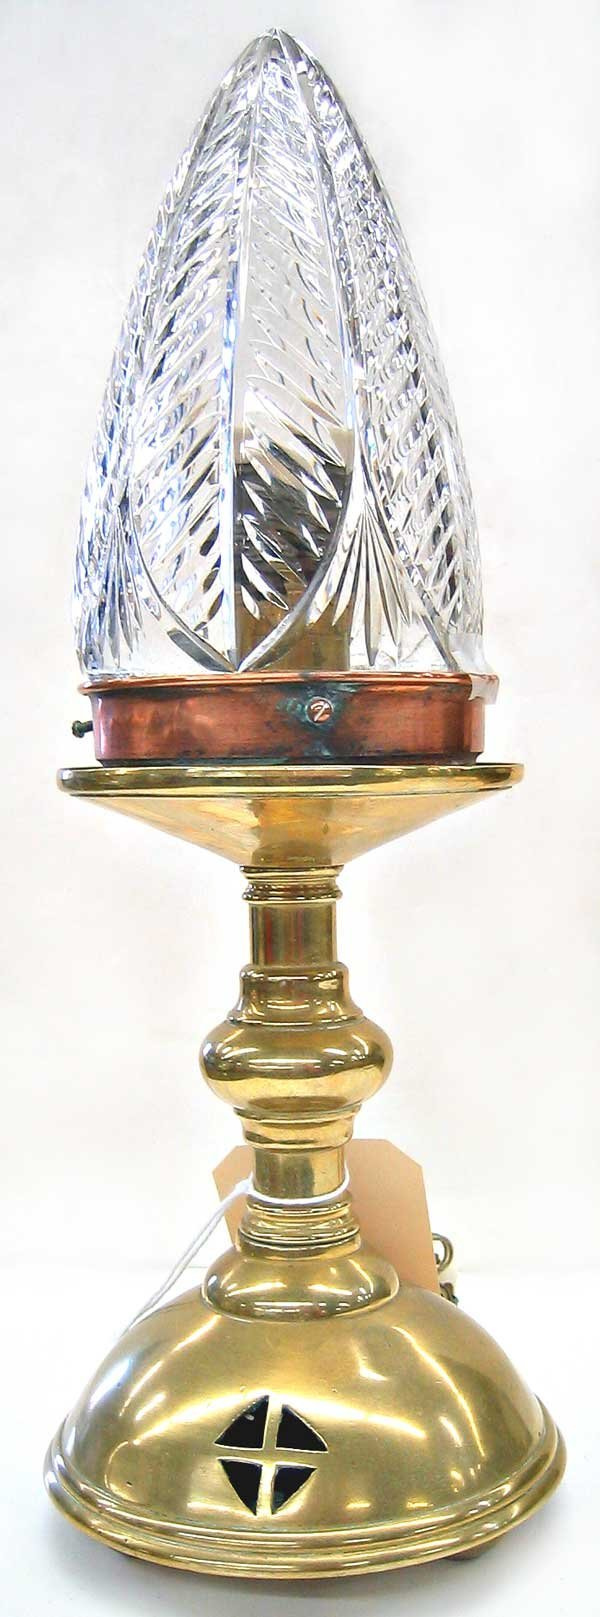 1972: Brass table lamp